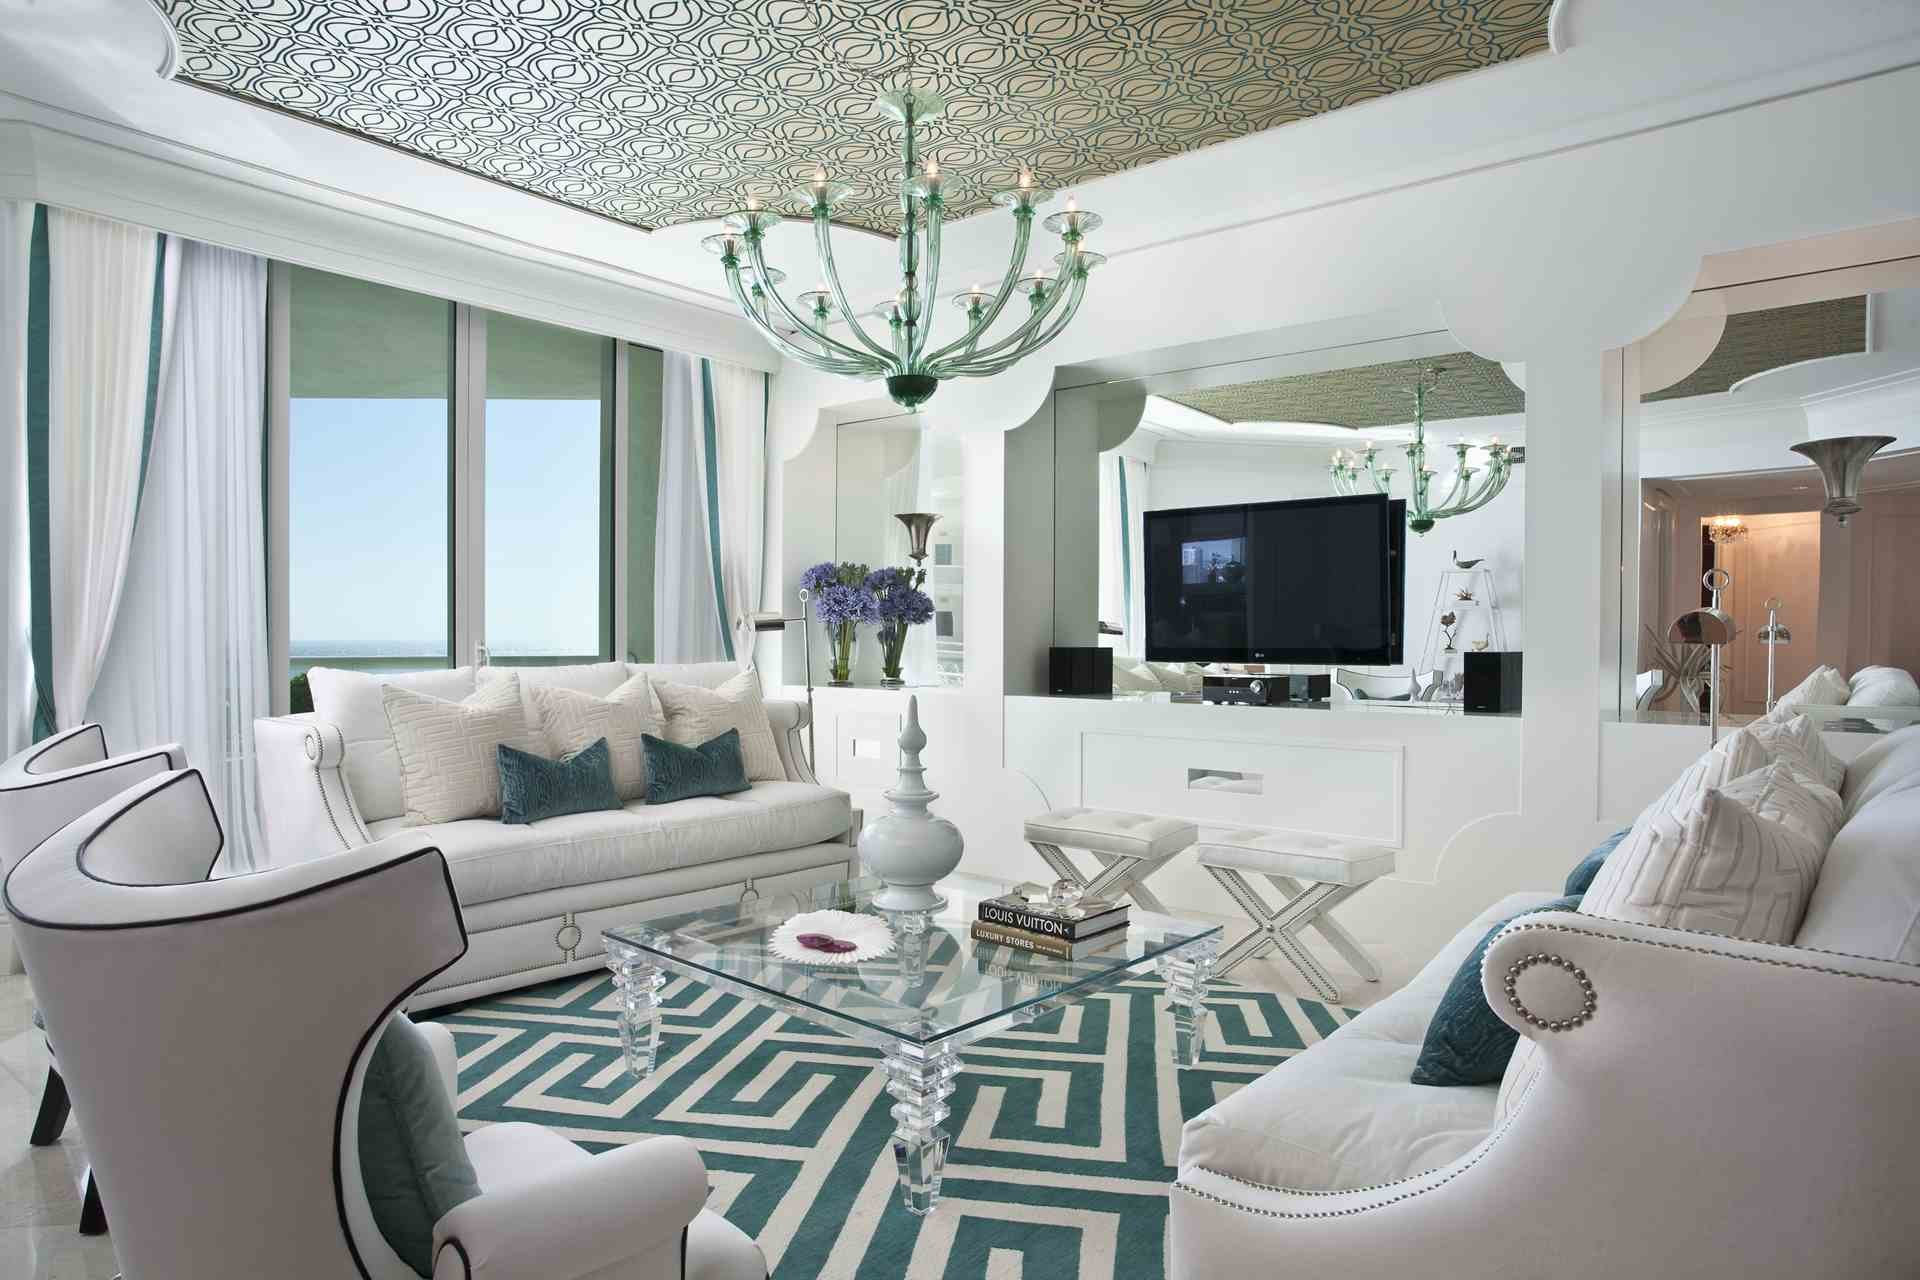 Brilliant Mirrored Walls In Living Rooms Of Imposing Intricate Motif For Room Interior